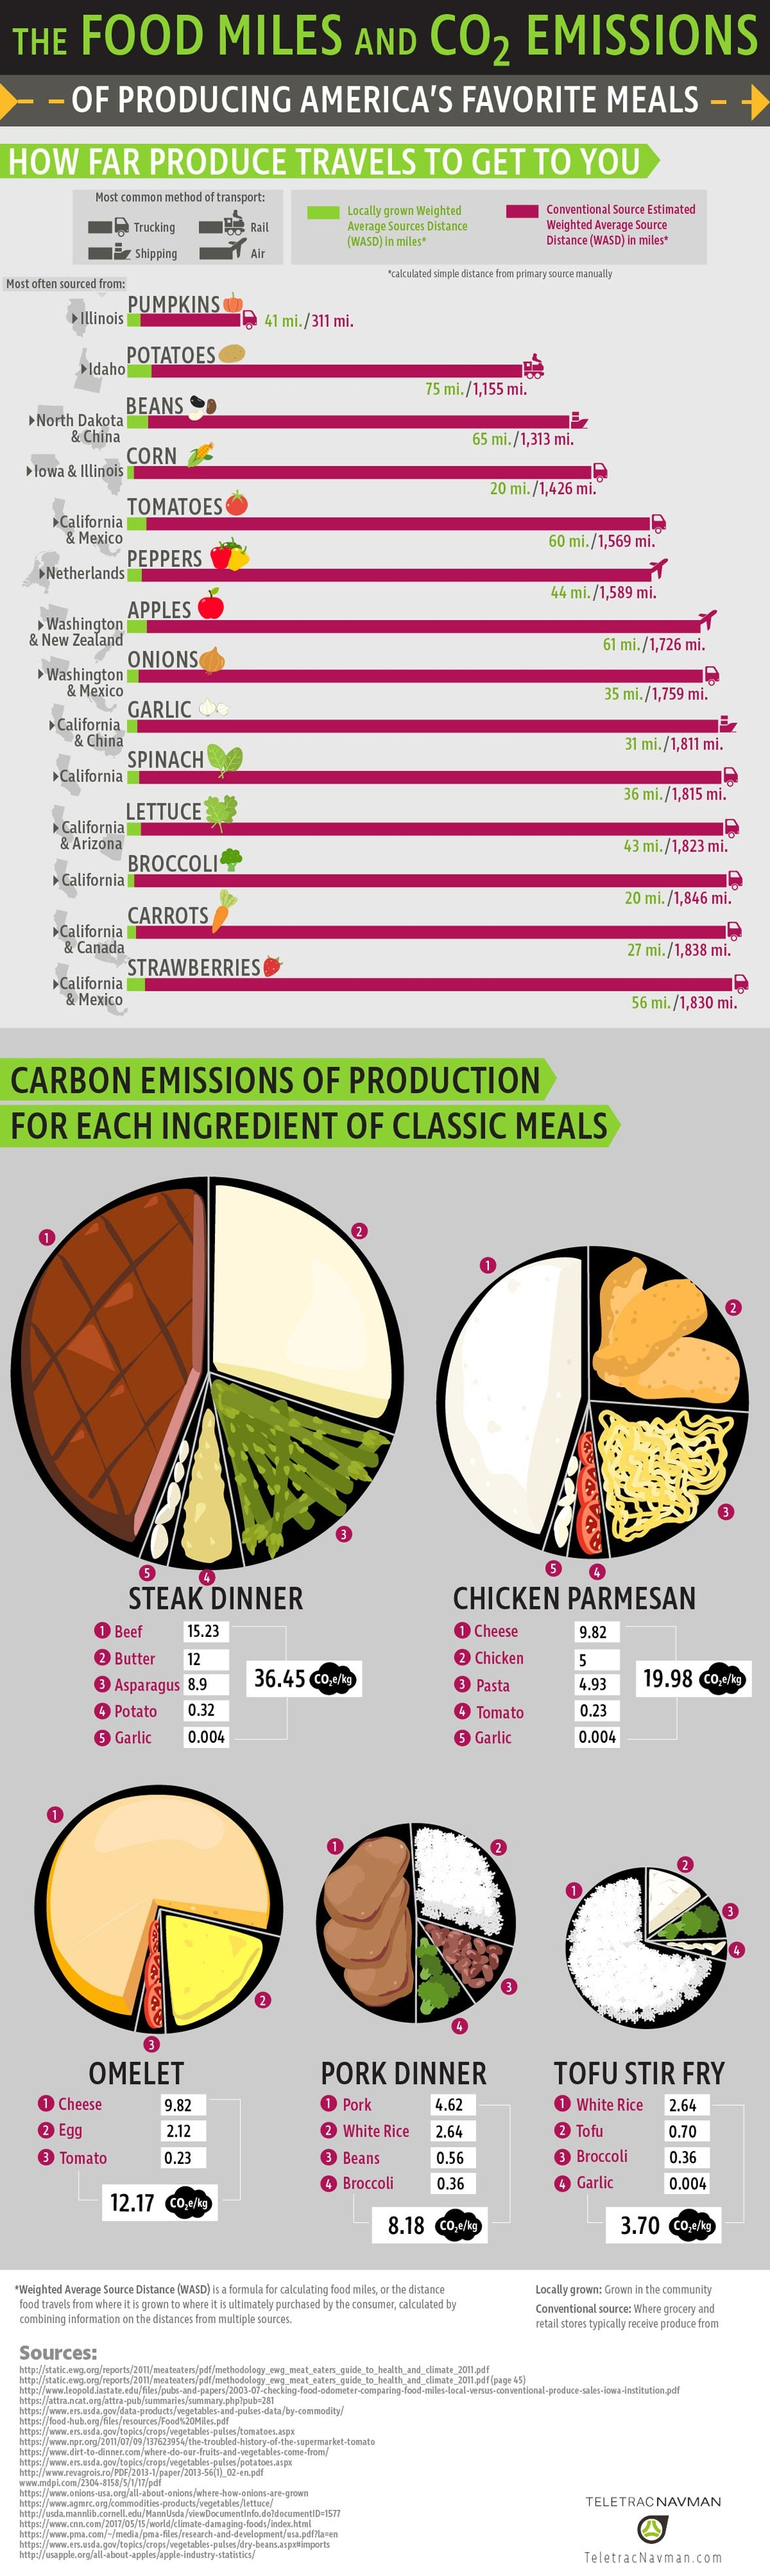 The Food Miles and CO2 Emissions of Producing America's Favorite Meals